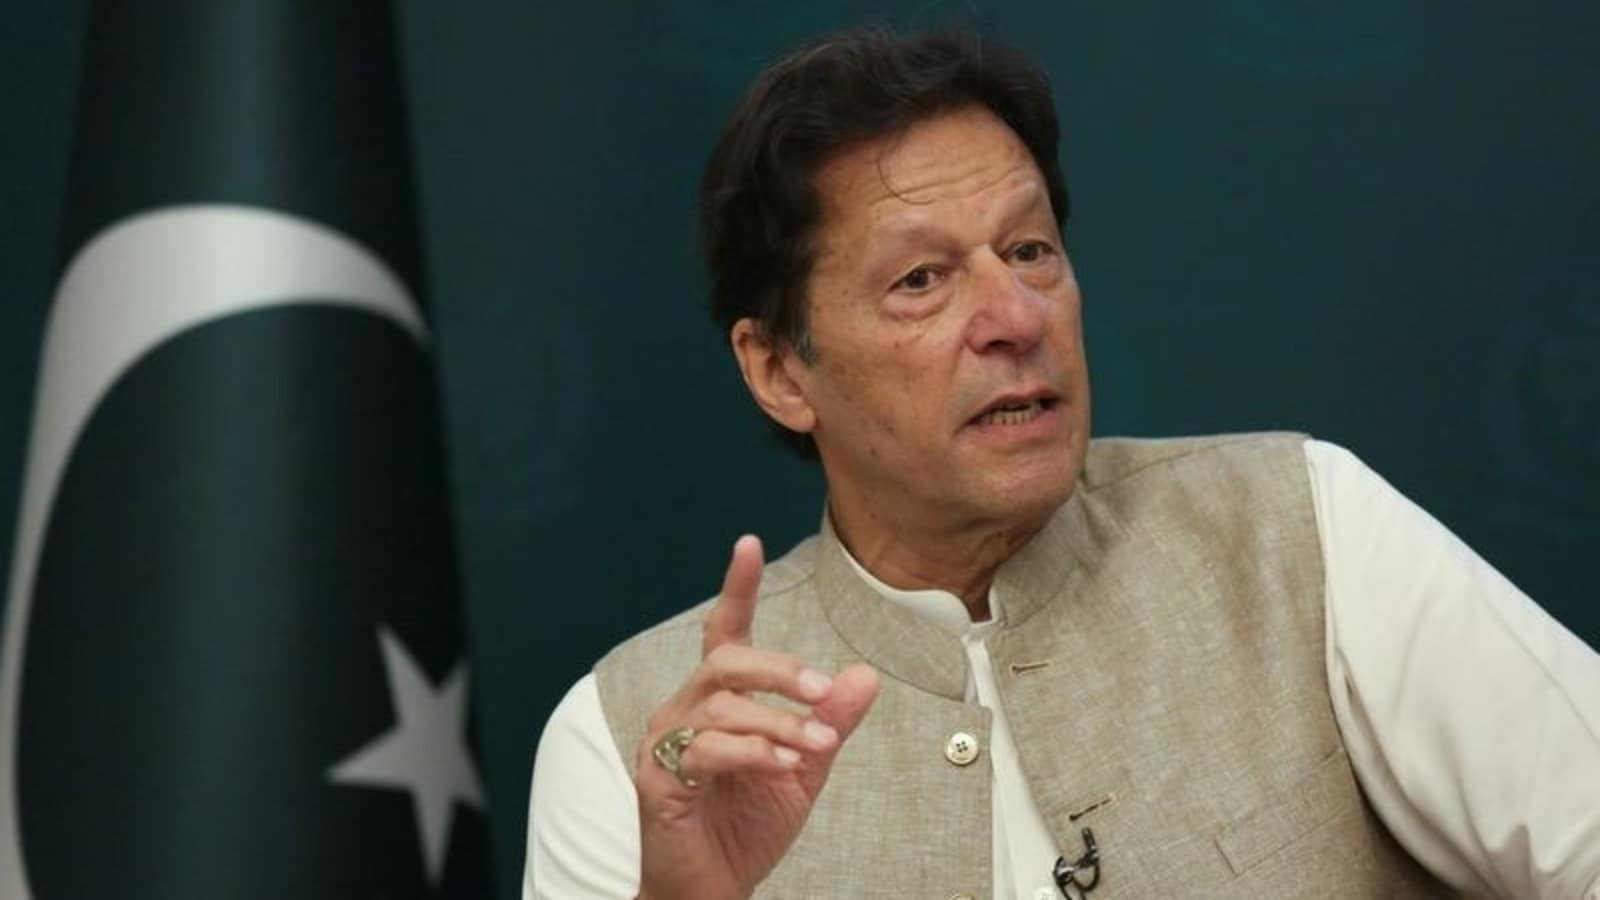 Pakistan PM Imran Khan says country under under 'pressure' from US, western  powers over close ties with China | World News - Hindustan Times